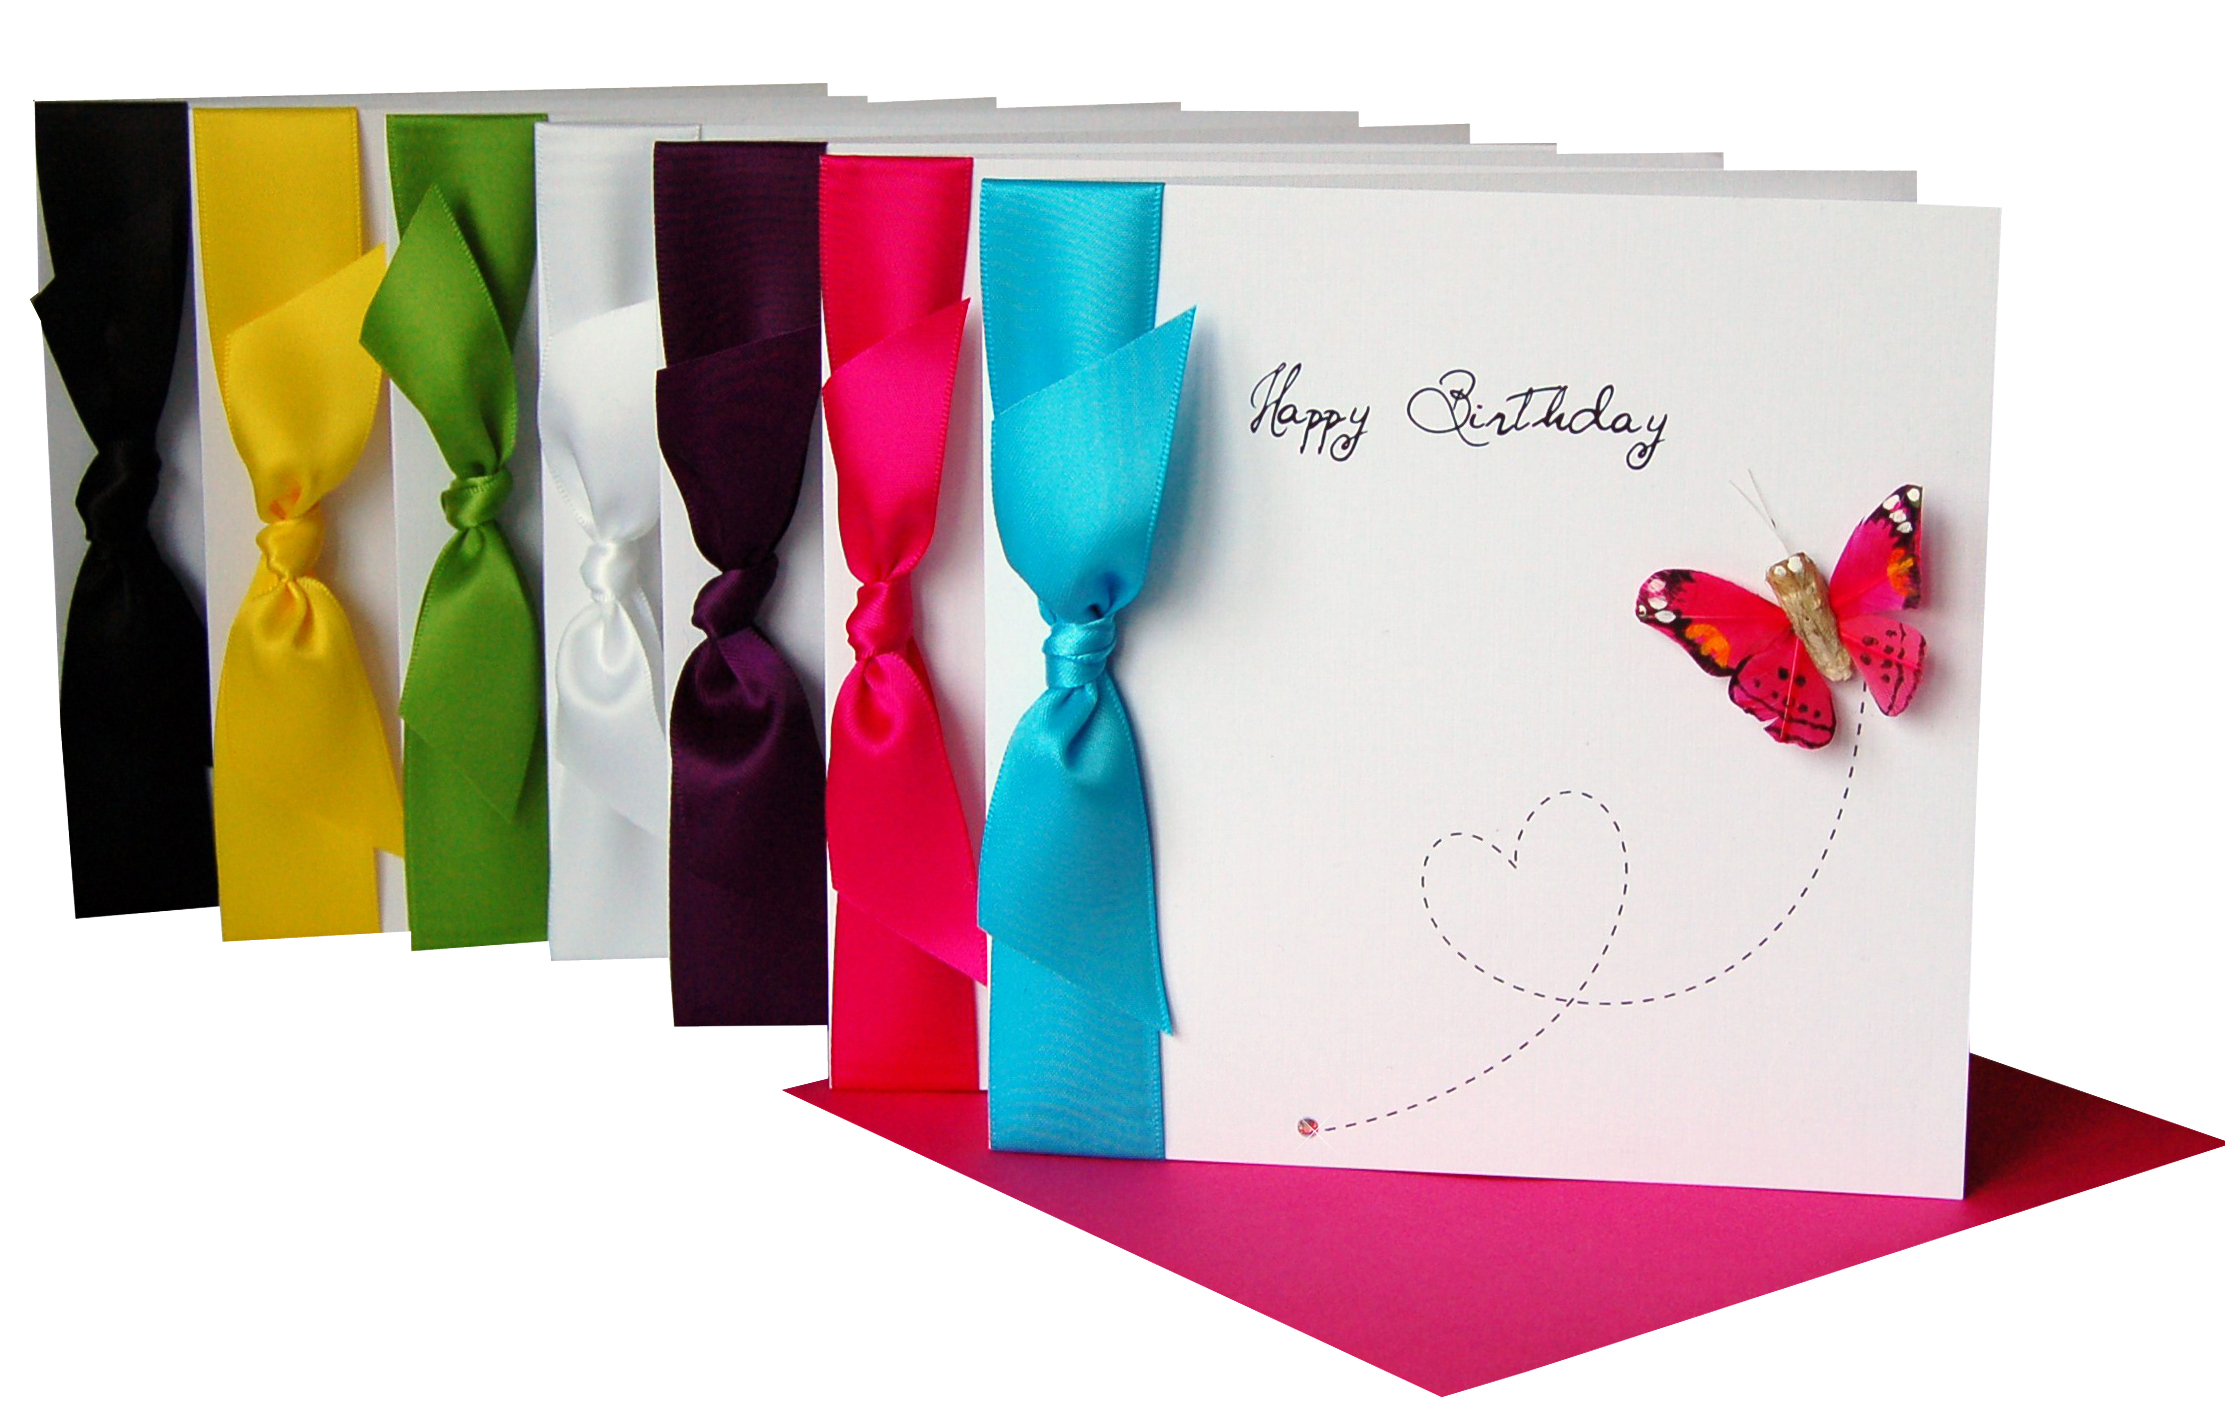 Handmade Birthday Invitation Cards Ideas How To Make Birthday Cards For Friends At Home How To Make Special